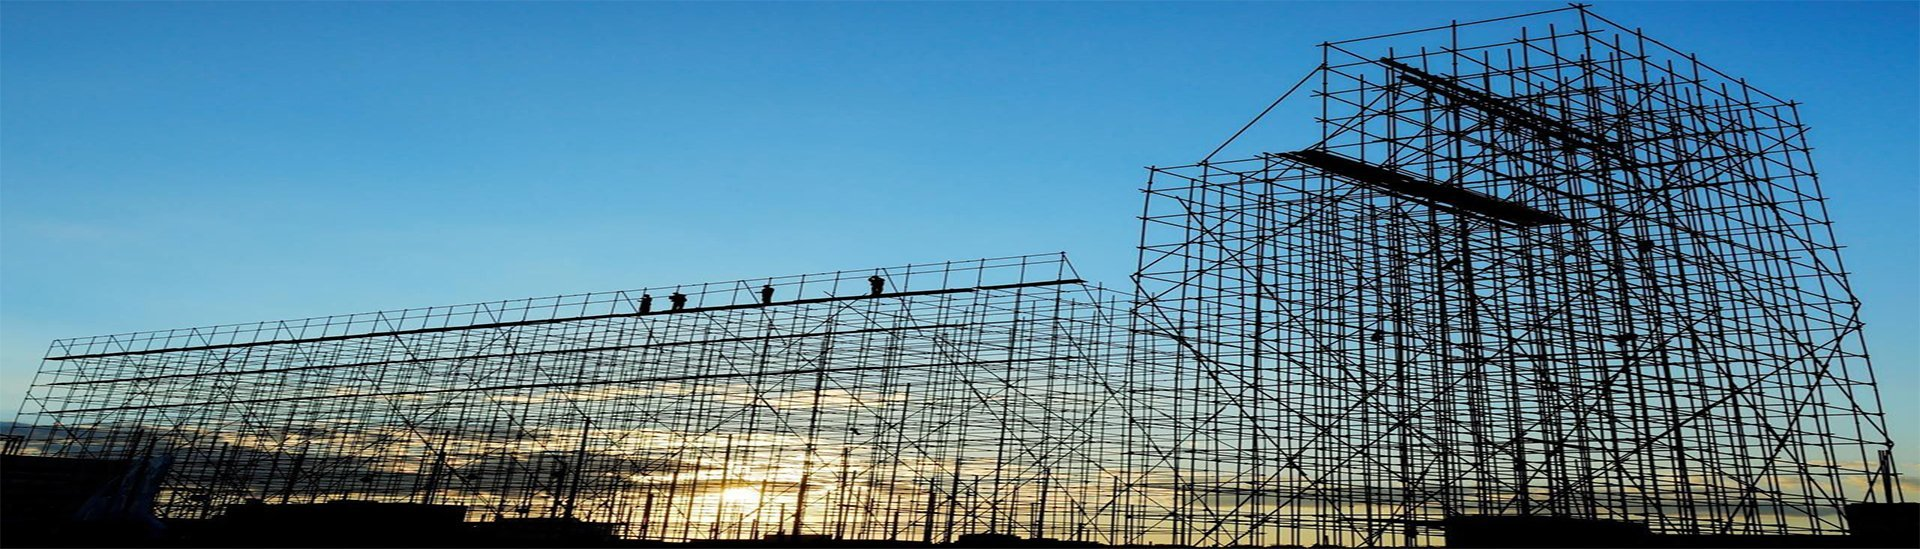 Shoring and Scaffoling